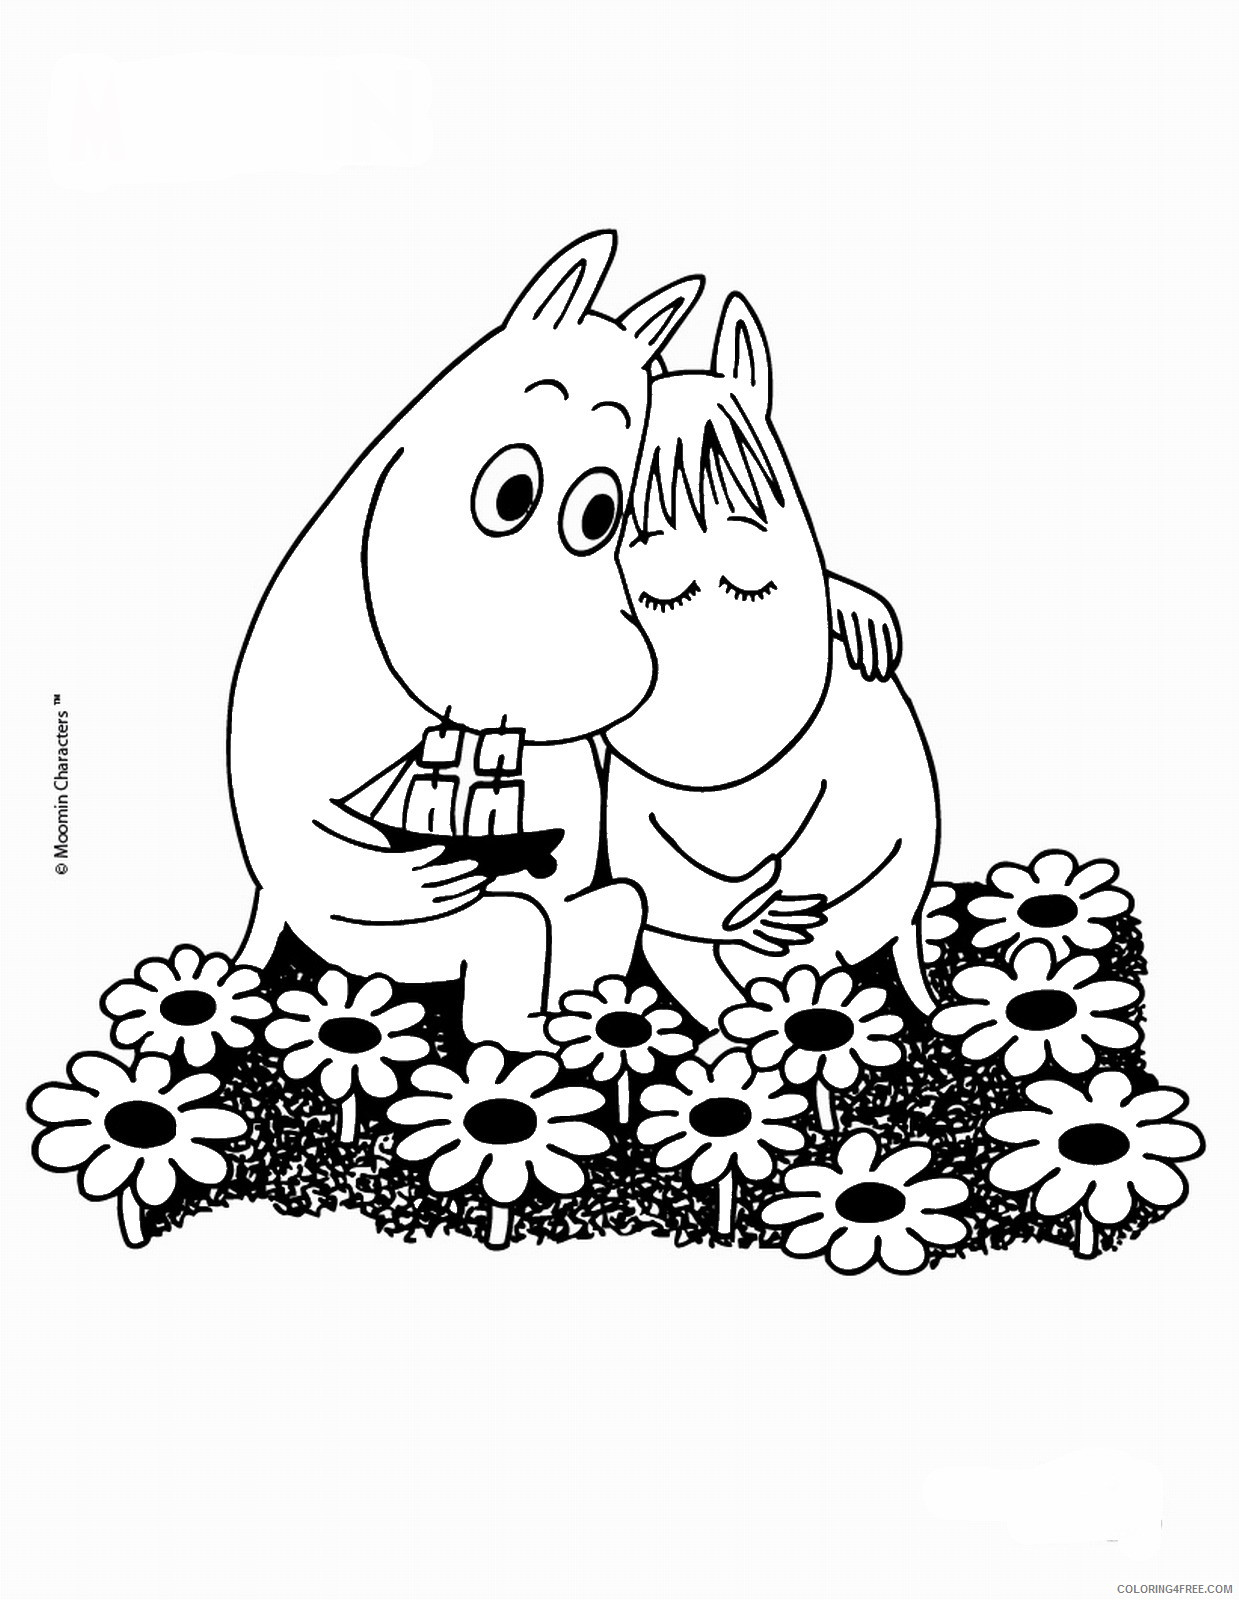 The Moomins Coloring Pages Cartoons moomins_cl_11 Printable 2020 6491 Coloring4free